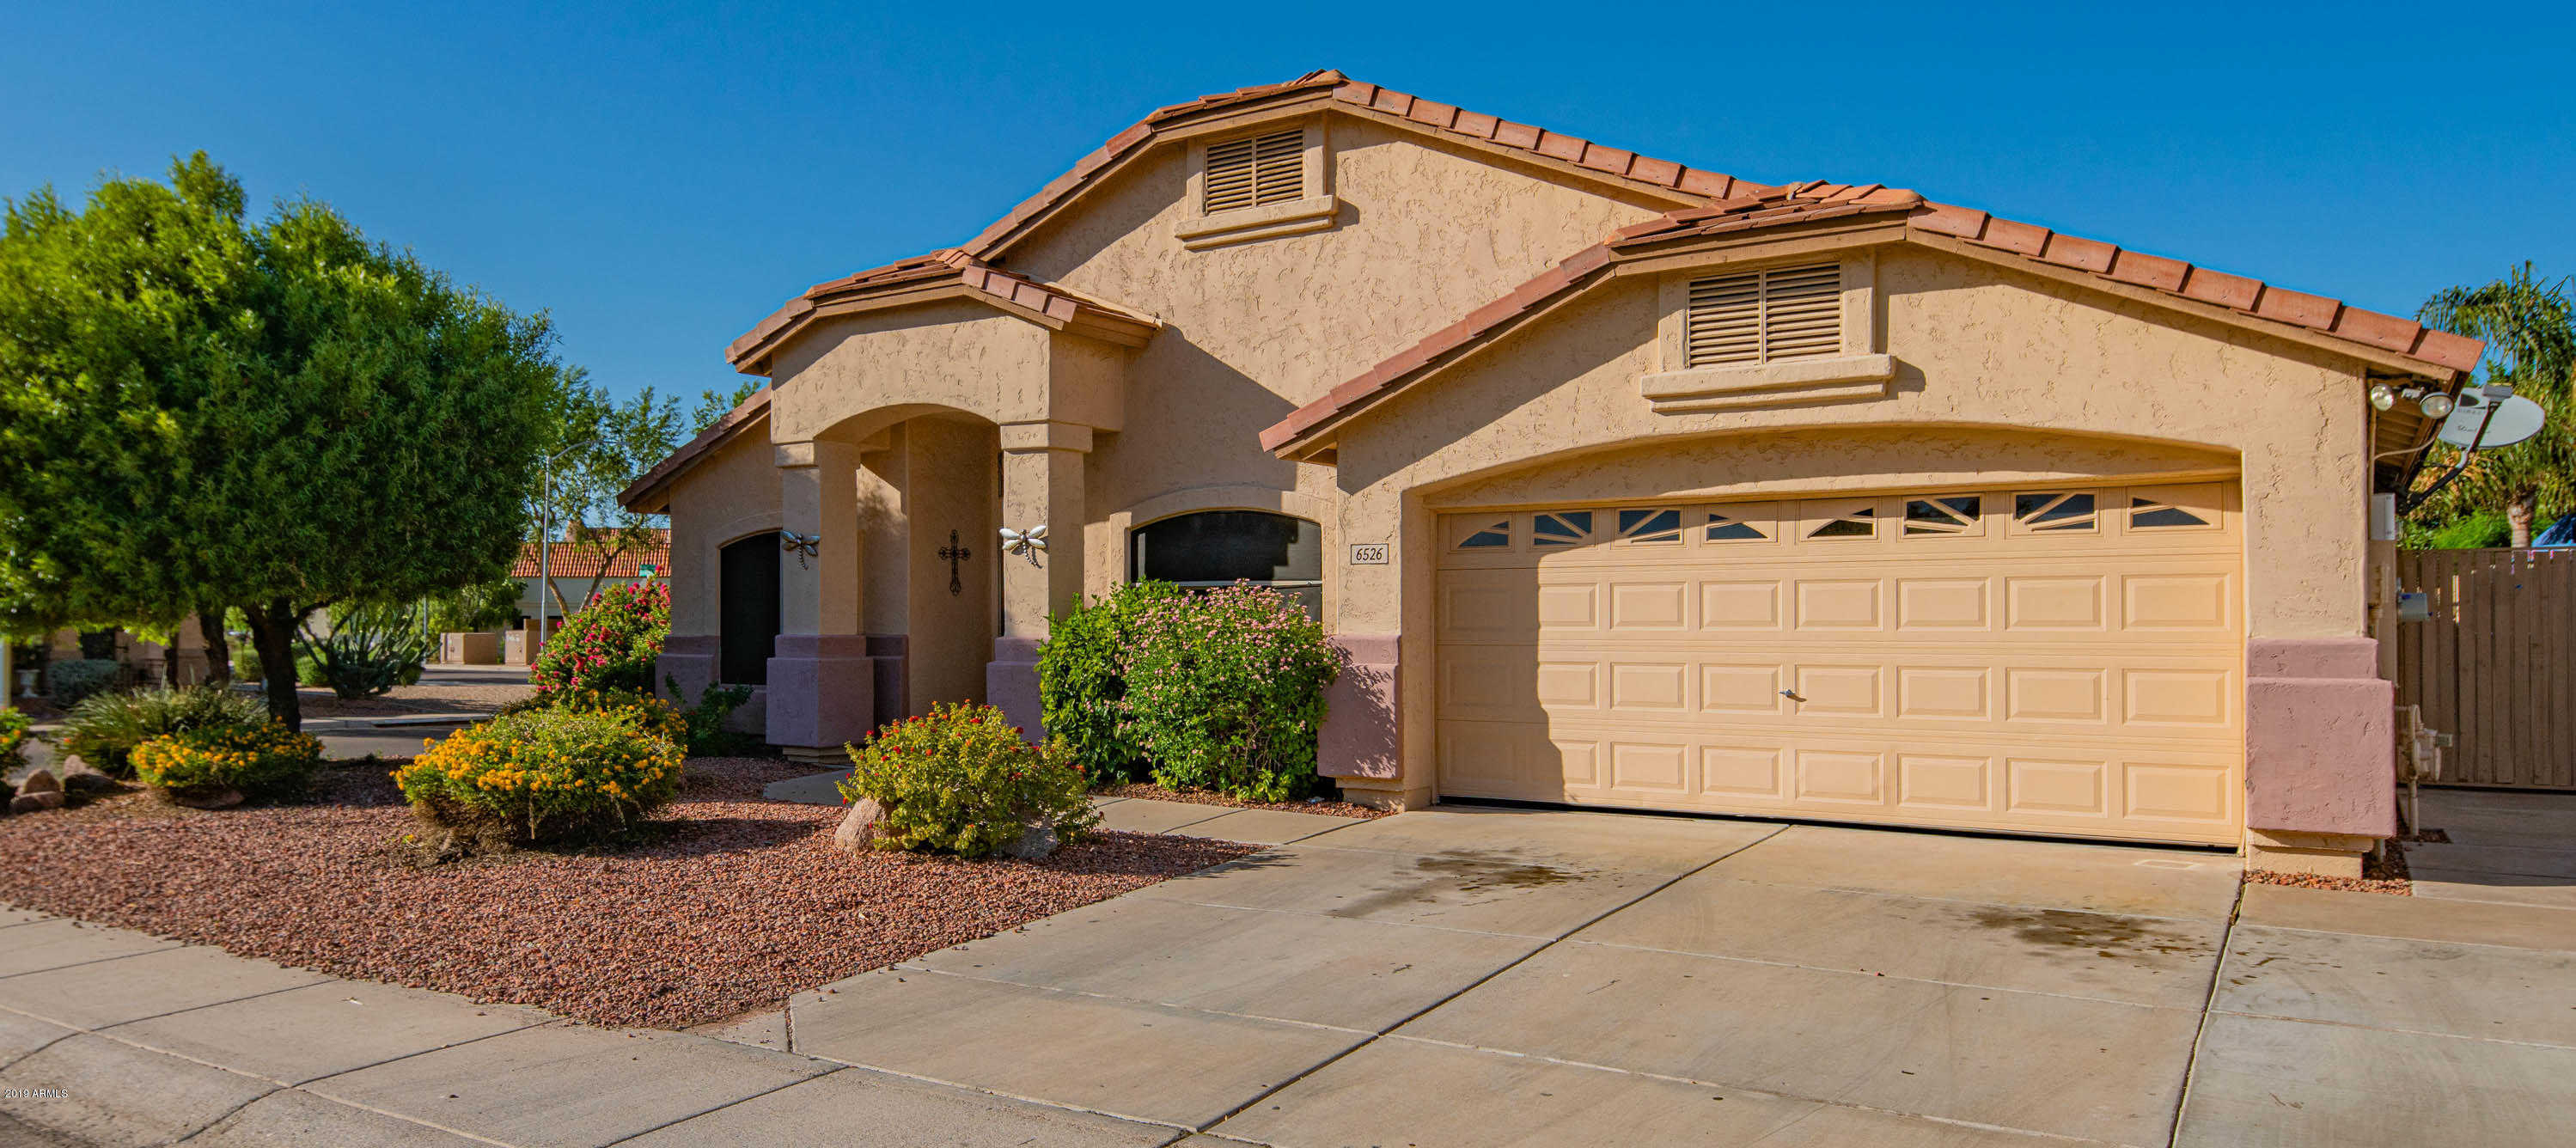 $385,000 - 4Br/2Ba - Home for Sale in Highlands At Arrowhead Ranch 1, Glendale